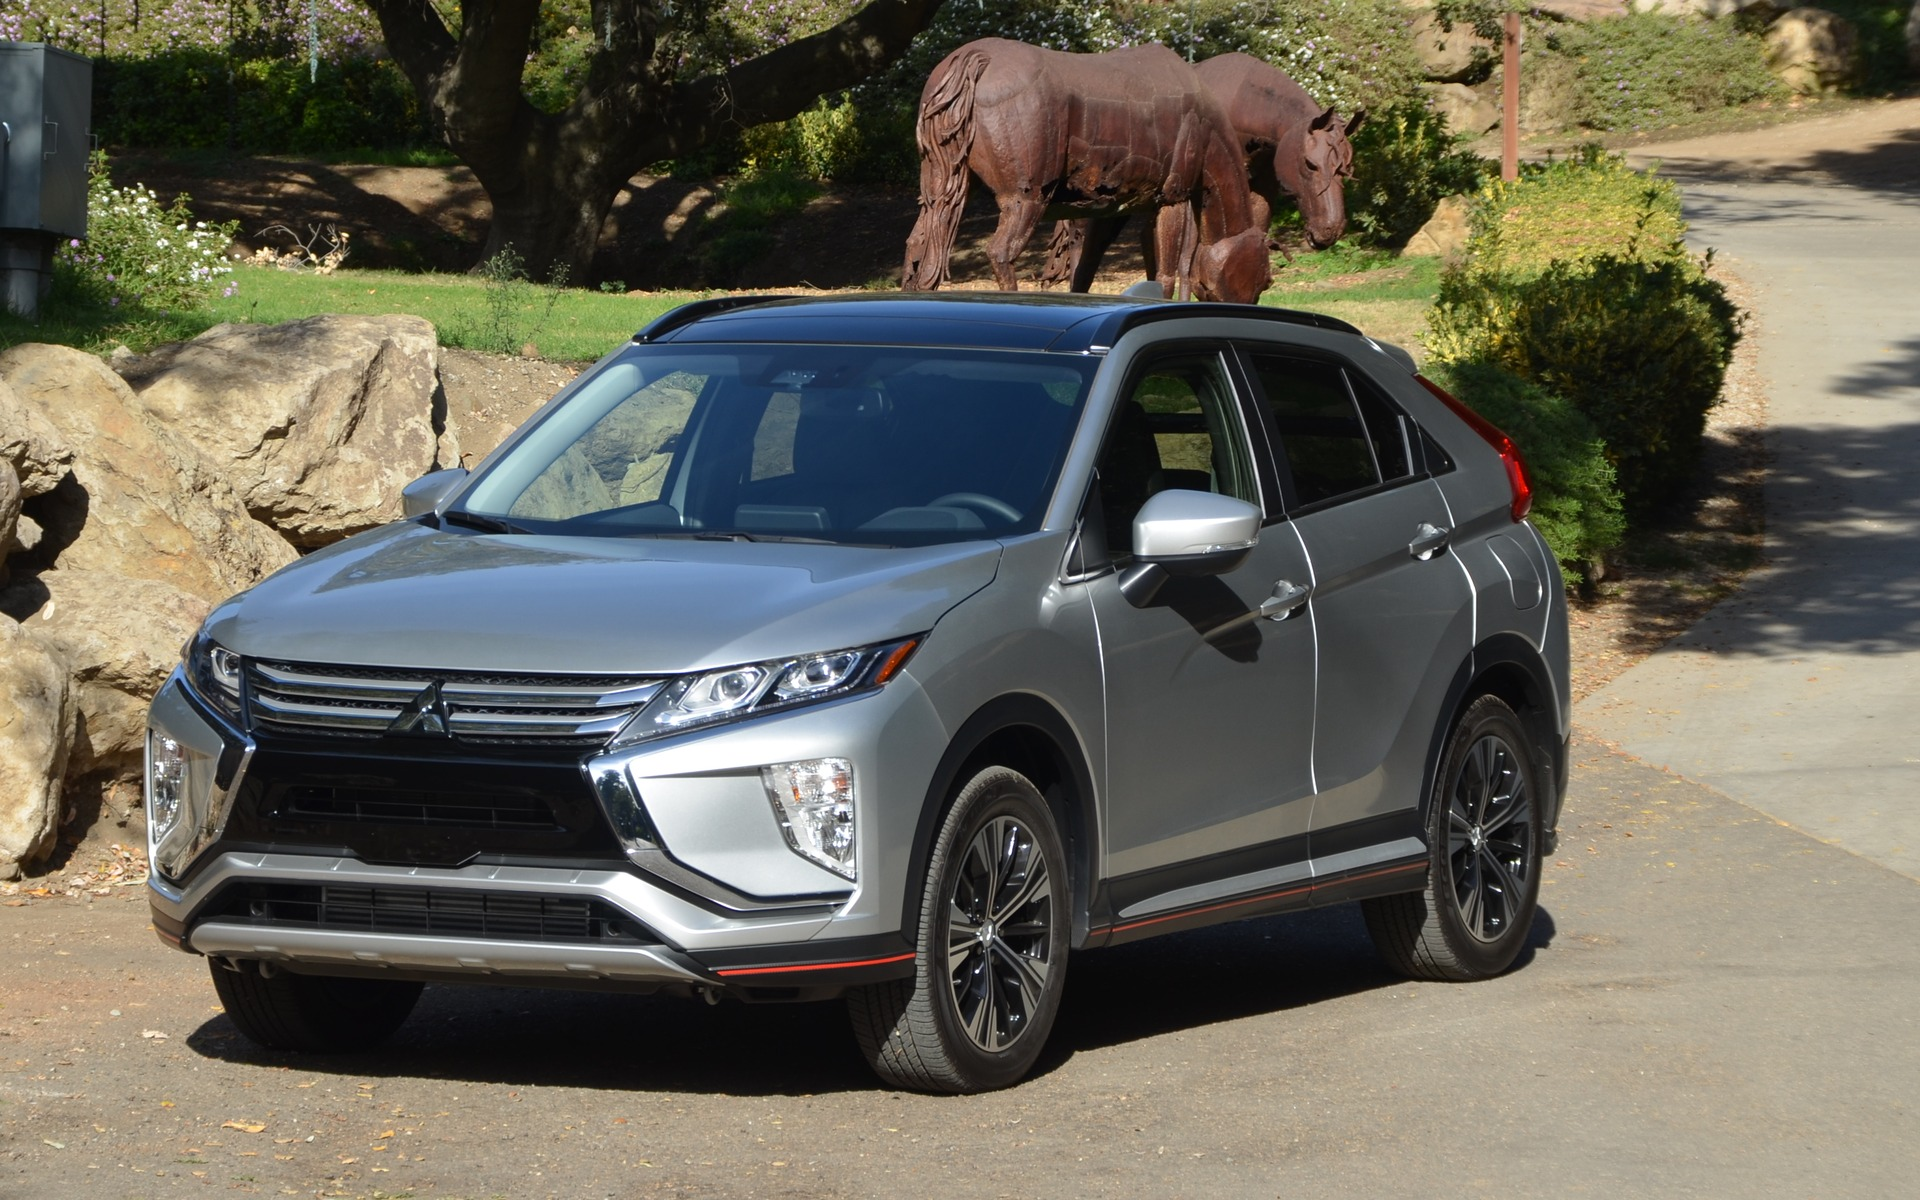 2018 Mitsubishi Eclipse Cross The Future Of A Certain